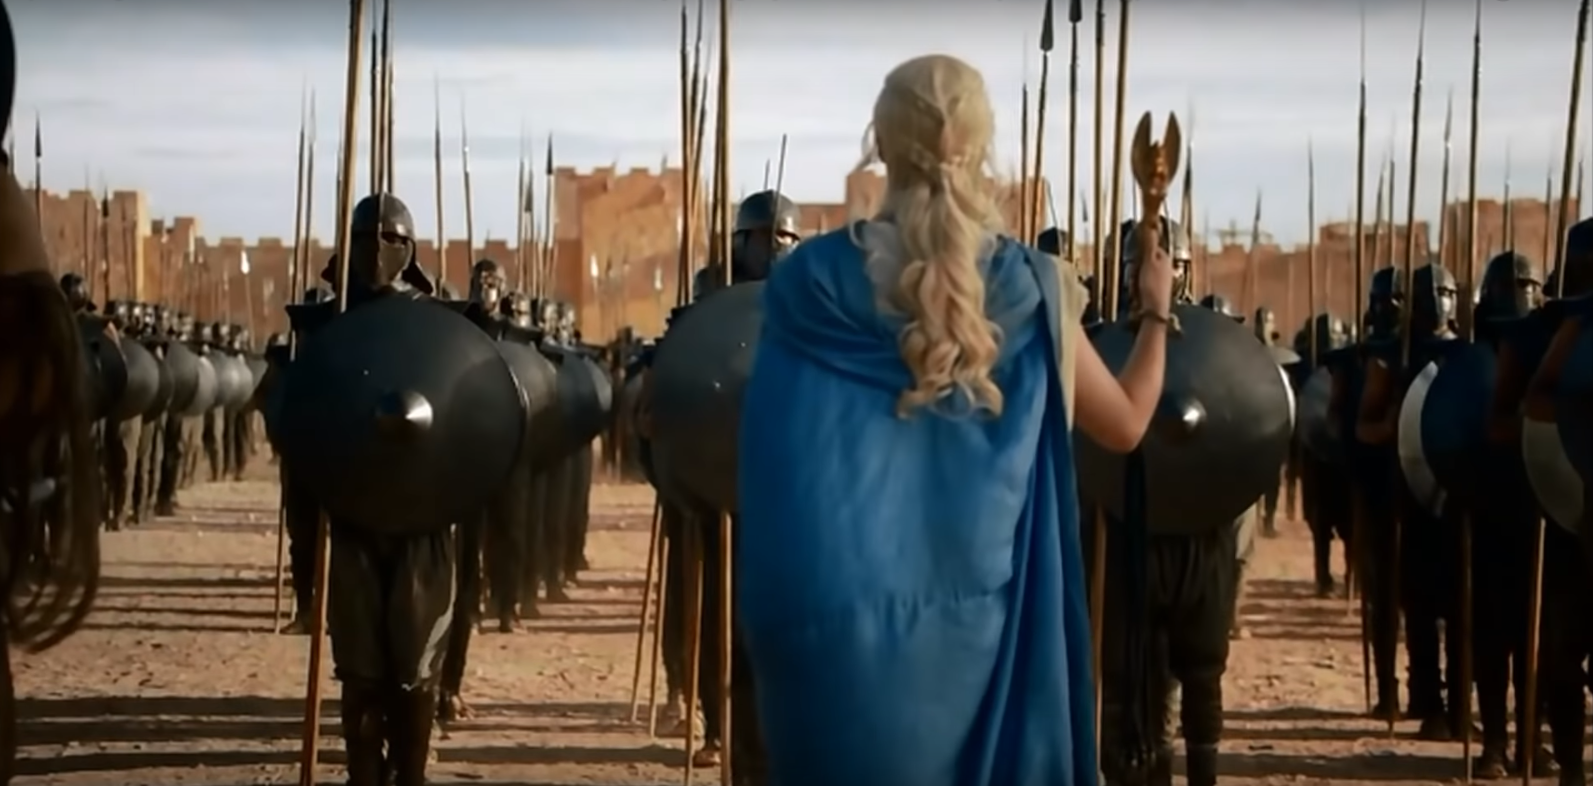 Girl-power-game-of-thrones-blog-full-frame (2)